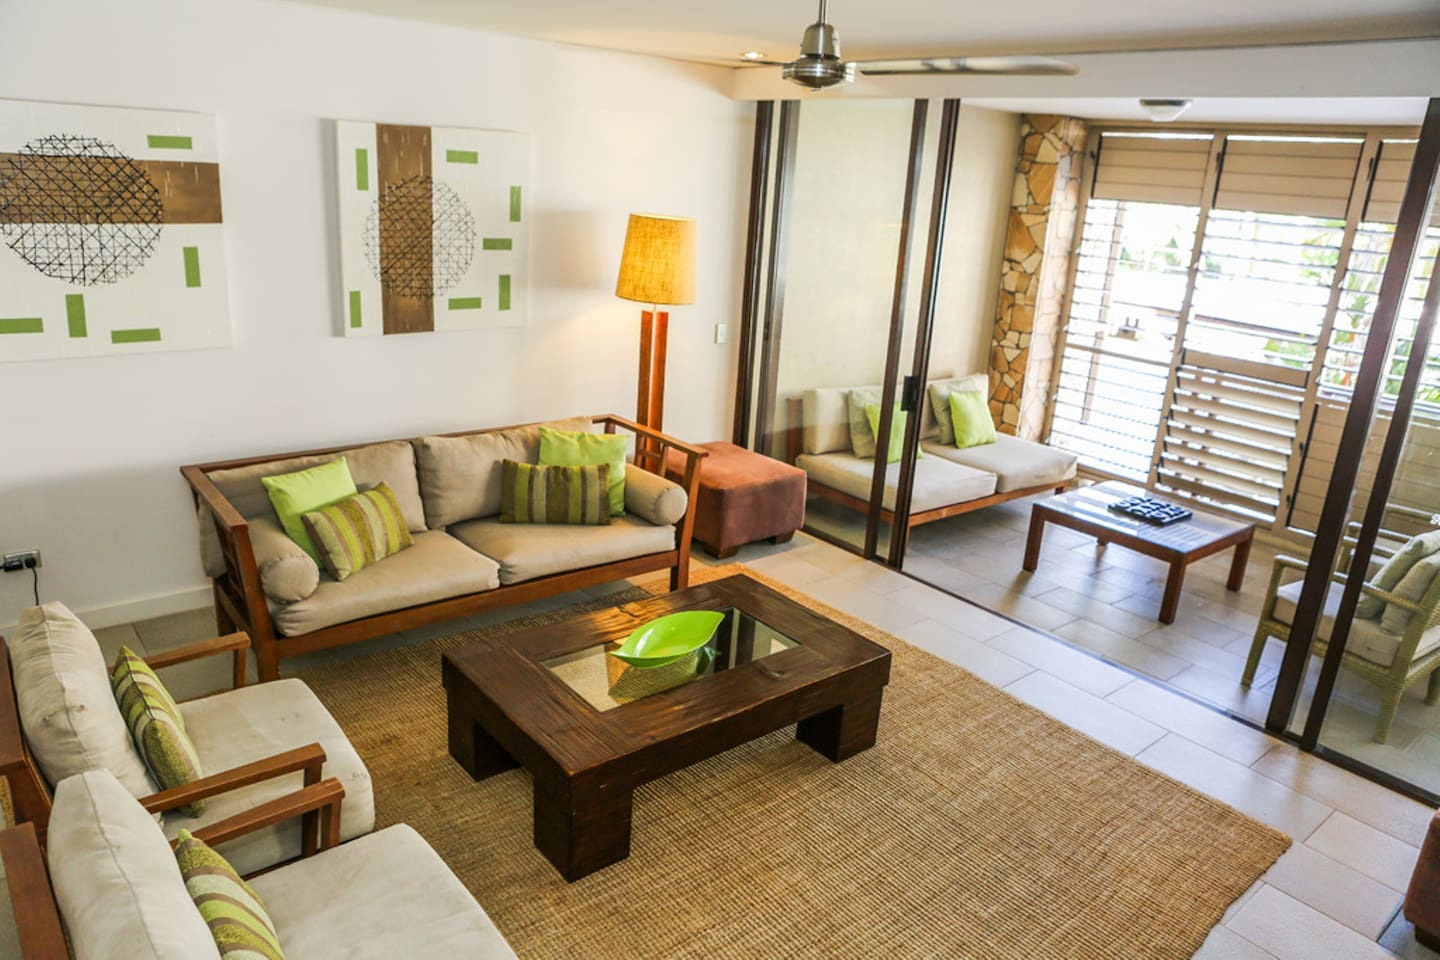 Open plan living and dining areas open onto the nalcony.